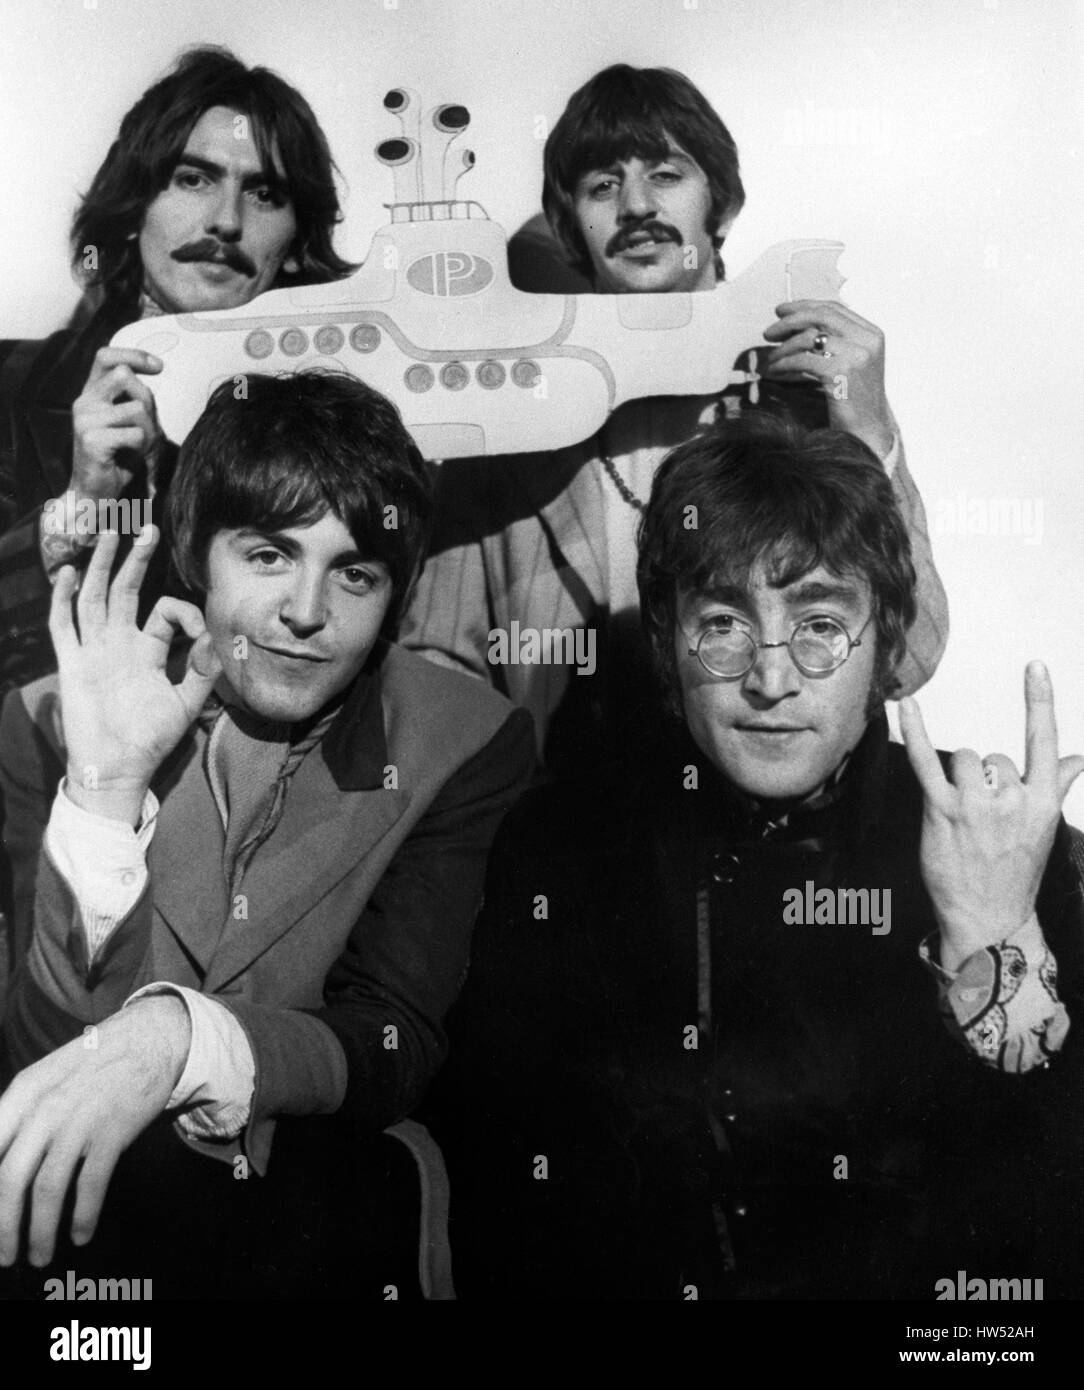 The Beatles George Harrison And Ringo Starr Background L R Paul McCartney John Lennon Front With A Cut Out Of Yellow Submarine